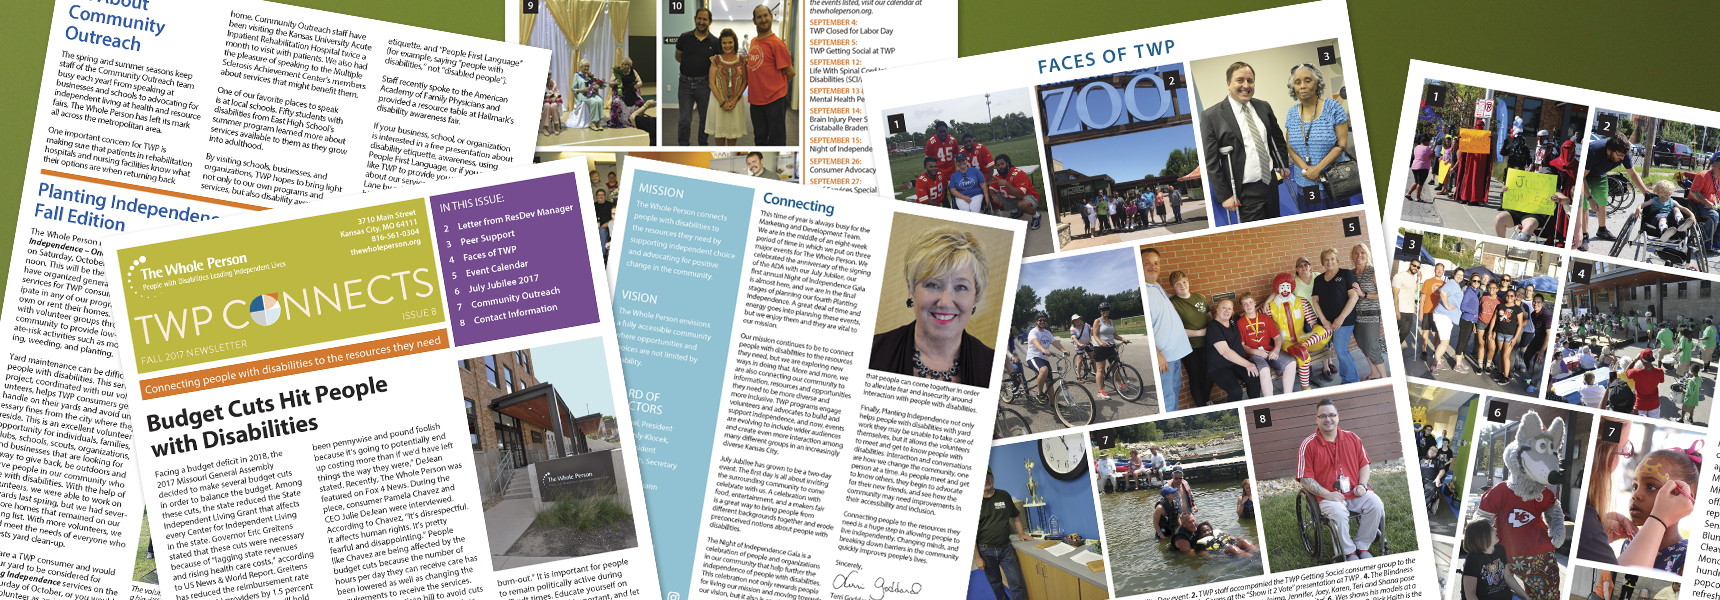 Photo collage of pages from newsletters